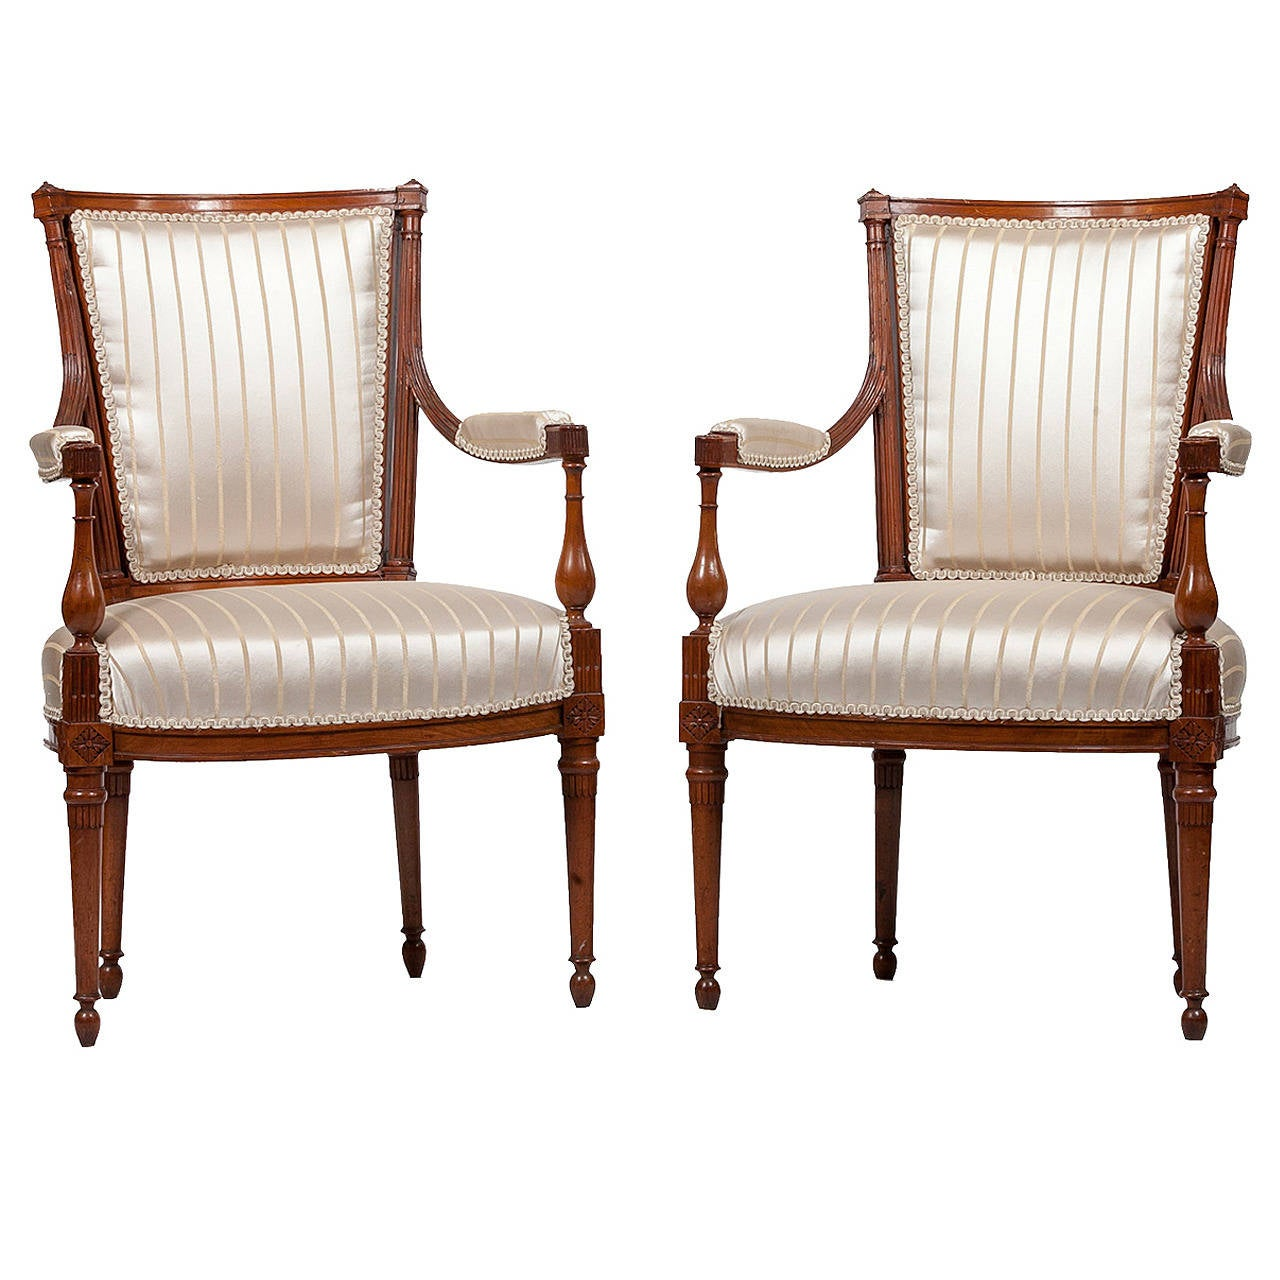 early 19th century french empire chairs for sale at 1stdibs. Black Bedroom Furniture Sets. Home Design Ideas